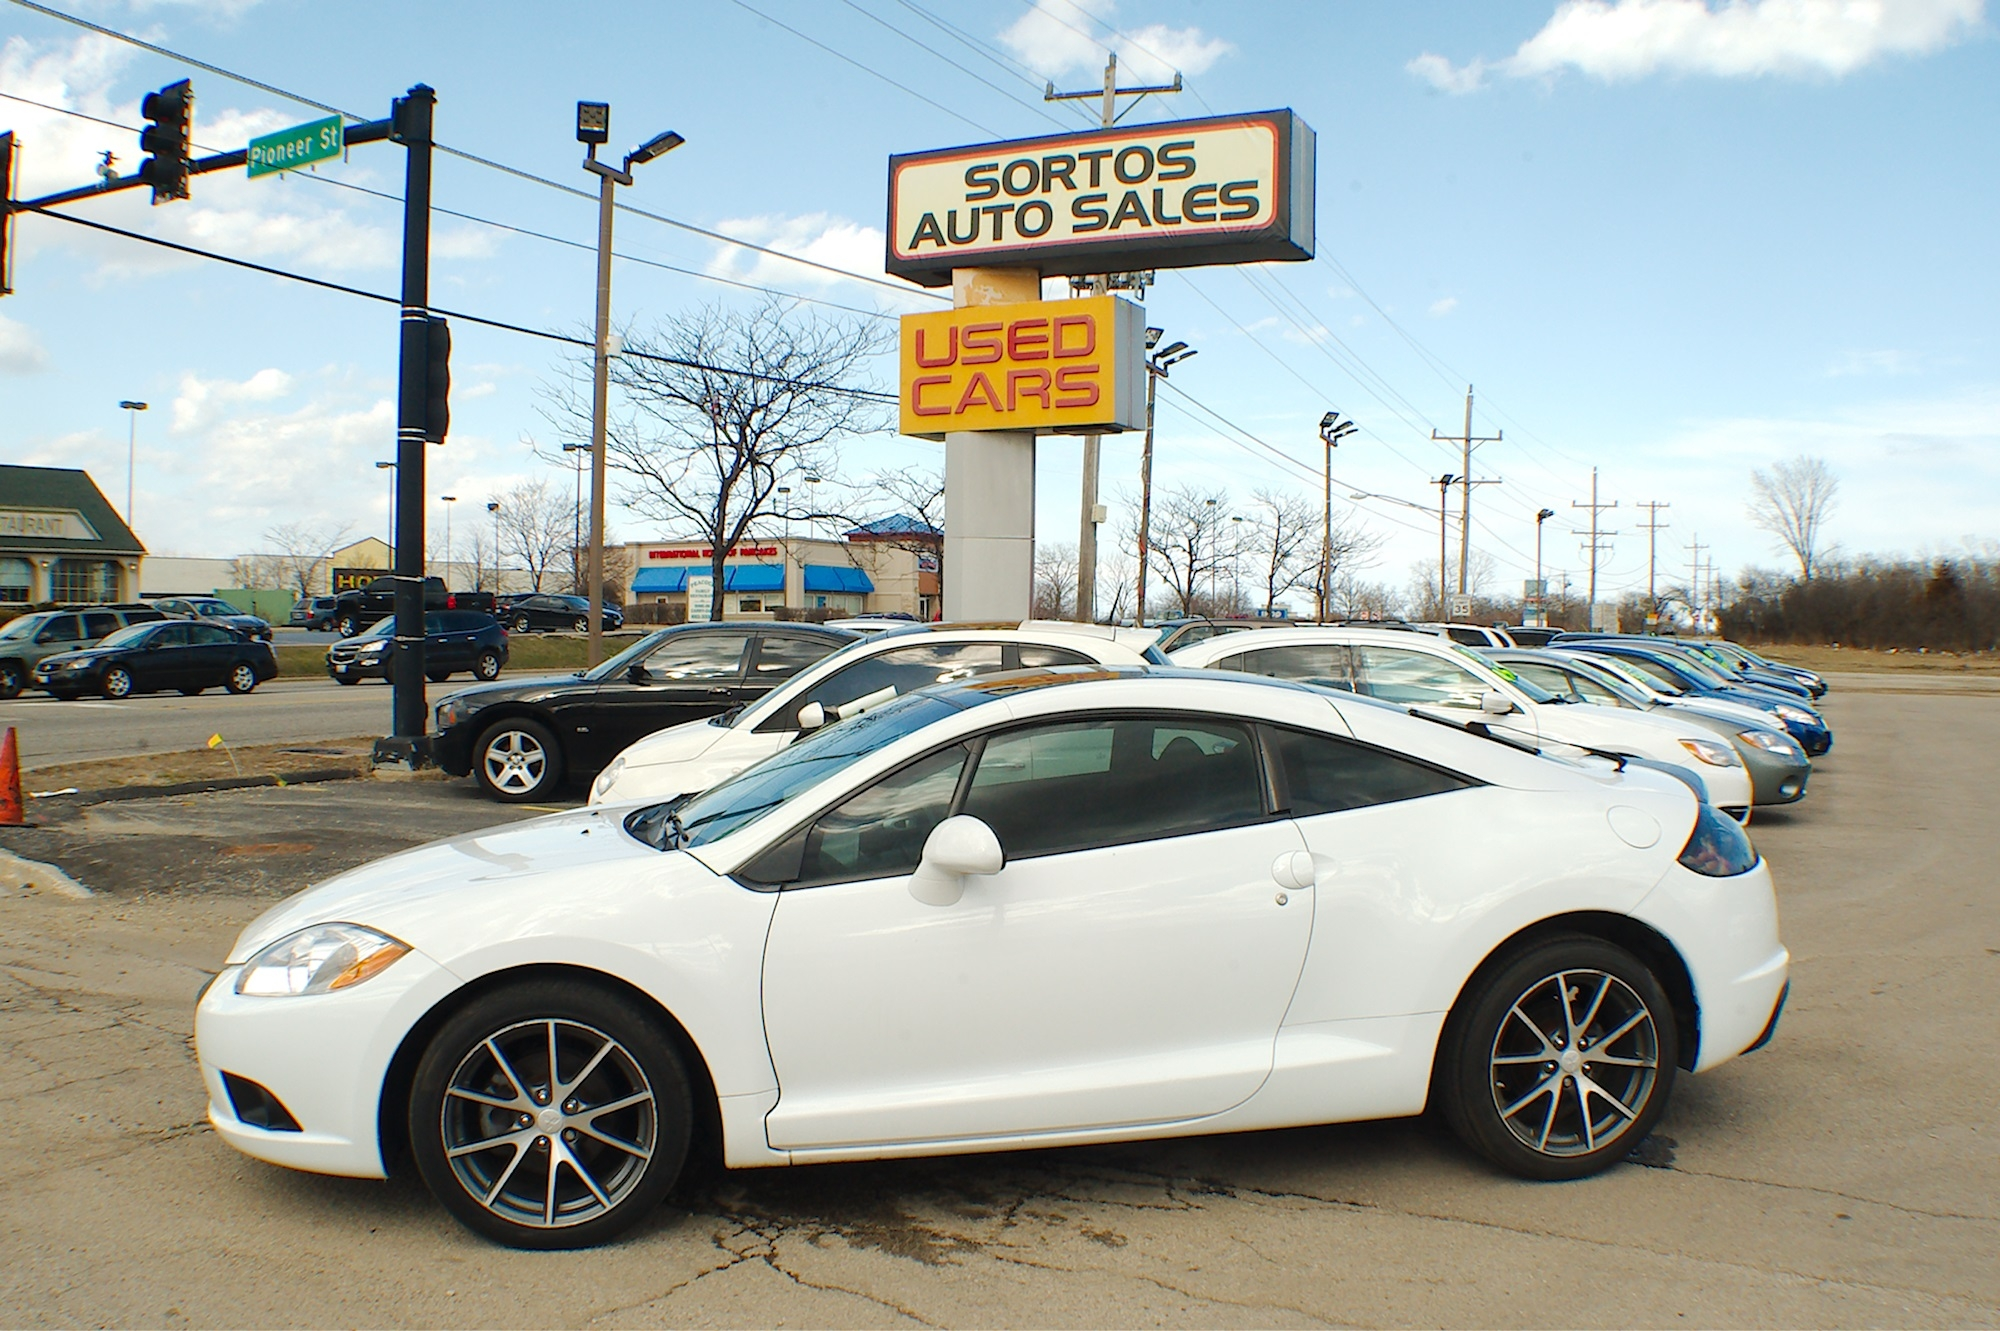 2012 Mitsubishi Eclipse White Coupe Used Car Sale Antioch Zion Waukegan Lake County Illinois